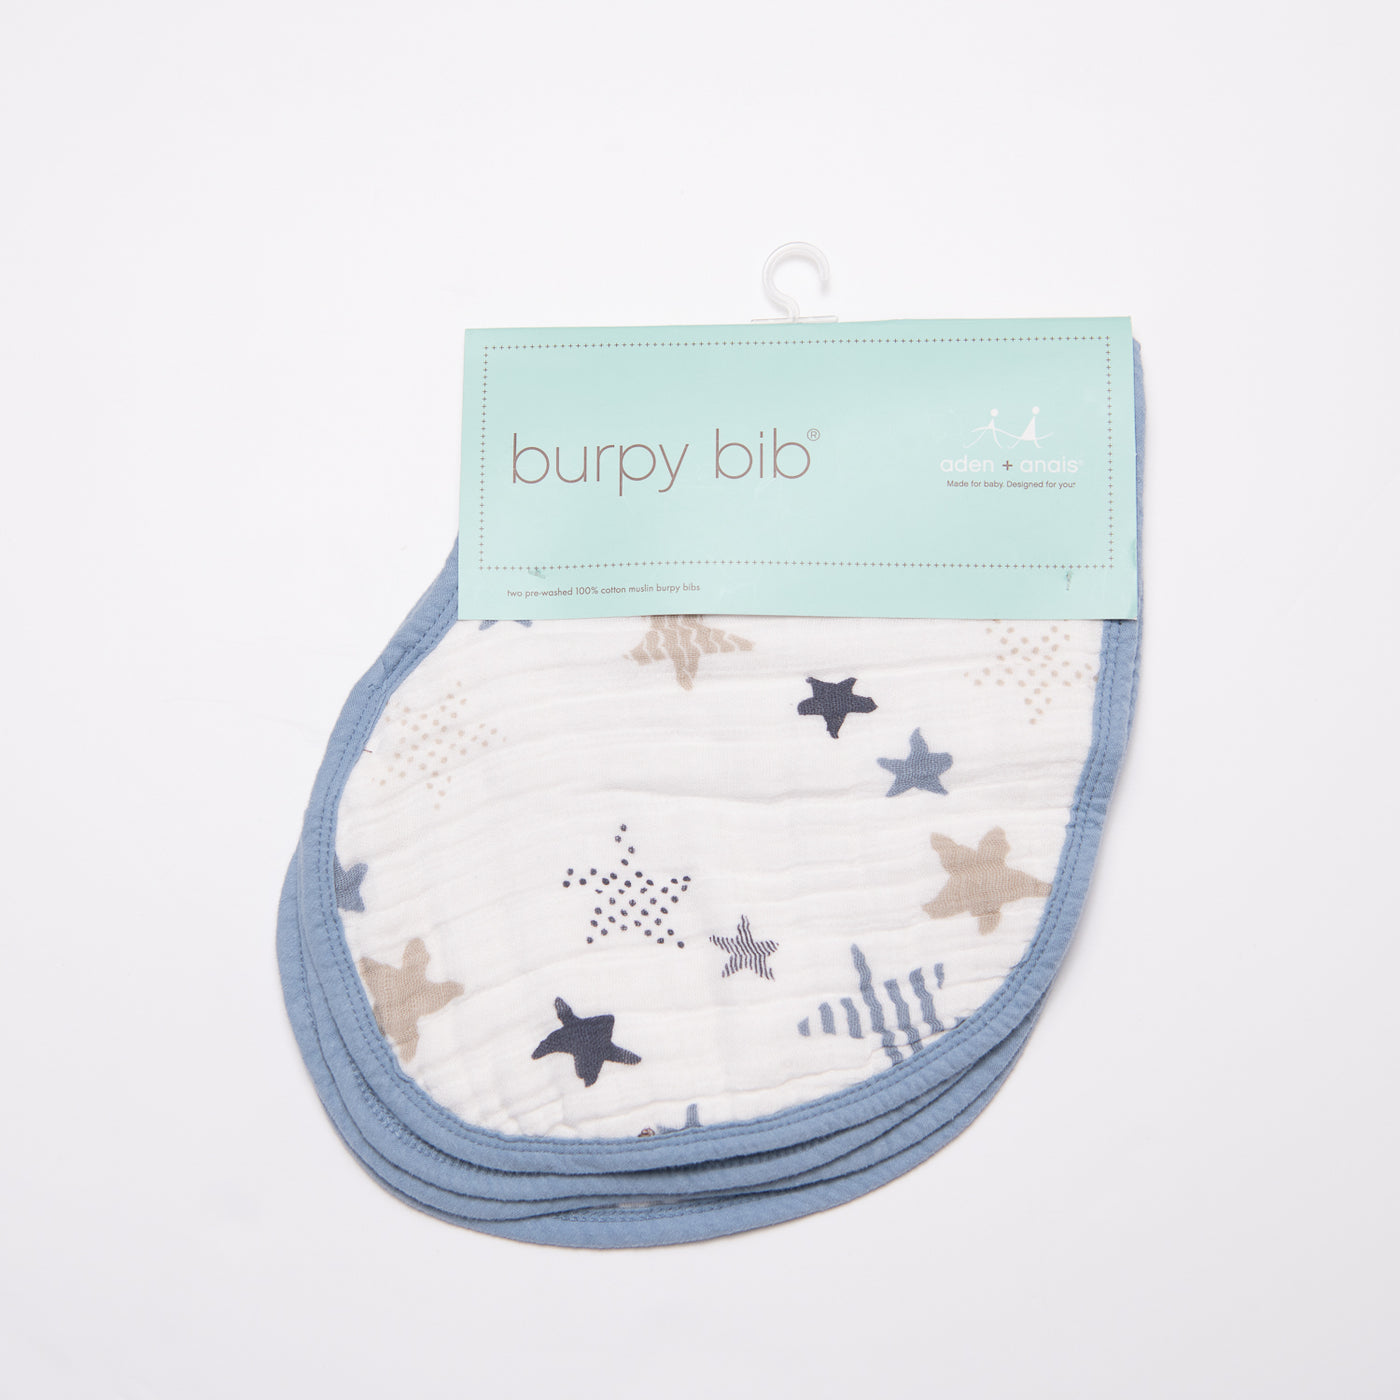 Lovestruck classic burpy bib 2 pack